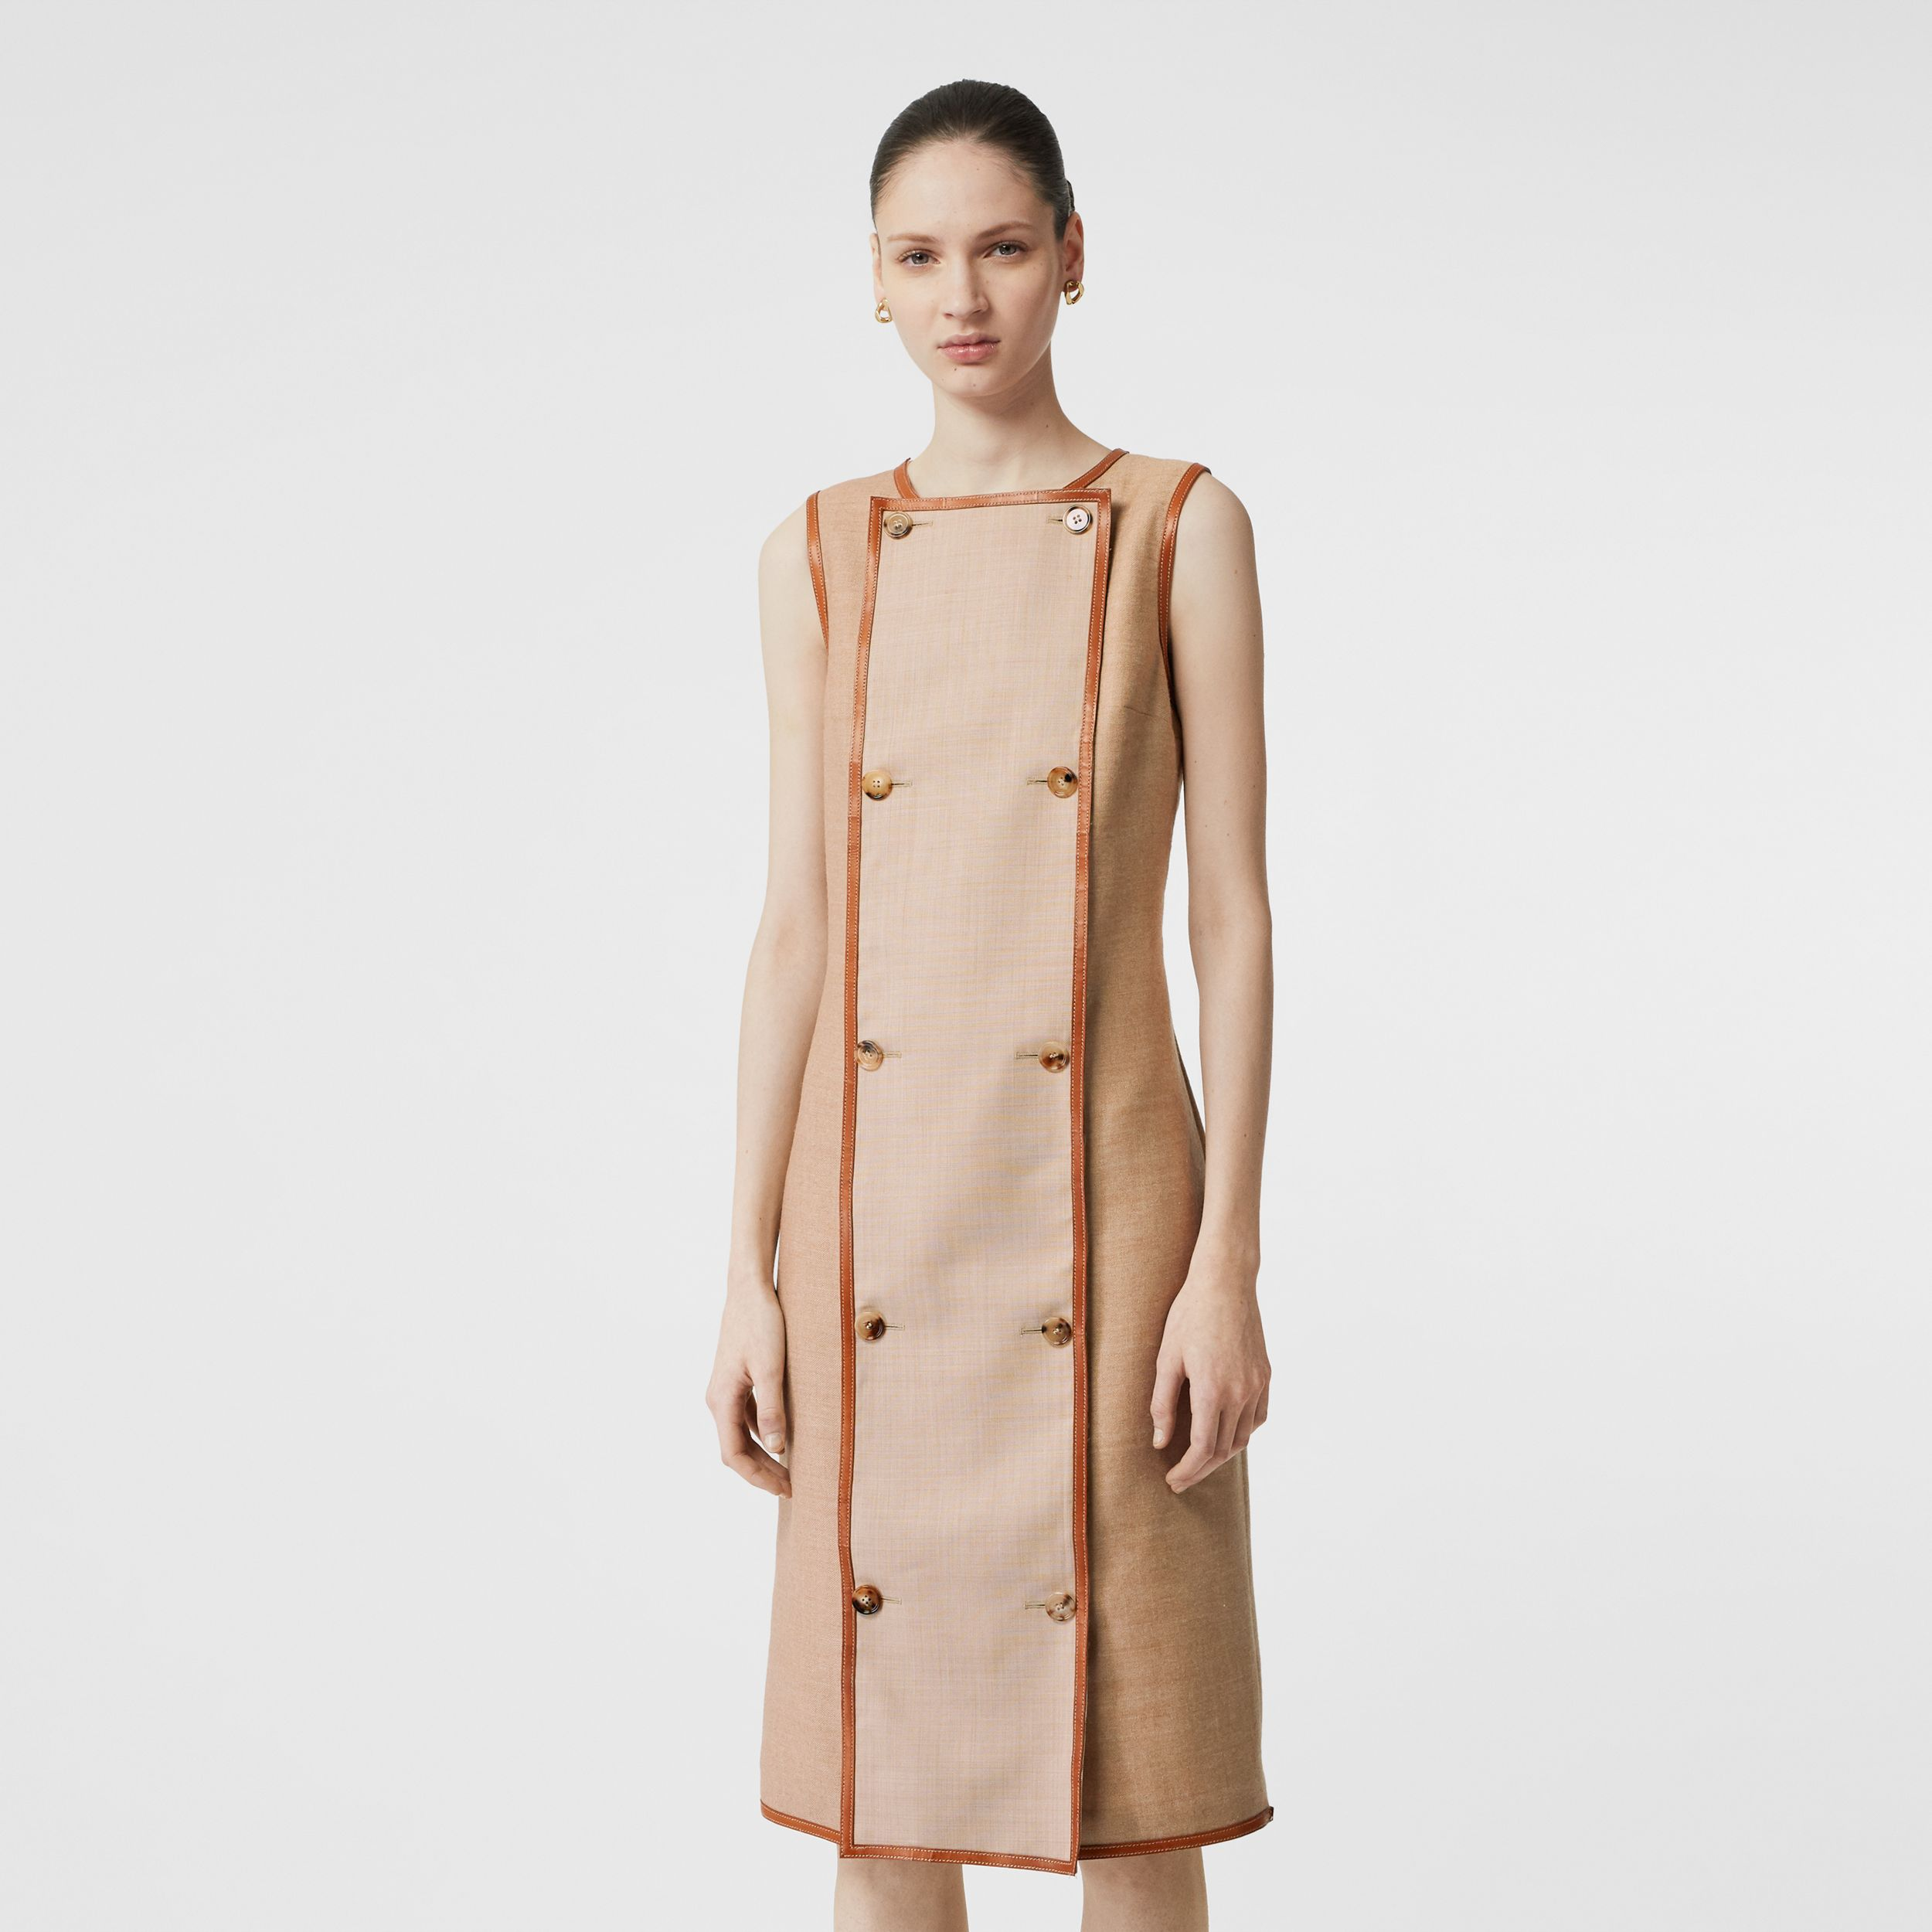 Button Panel Detail Wool Blend Shift Dress in Biscuit - Women | Burberry - 1